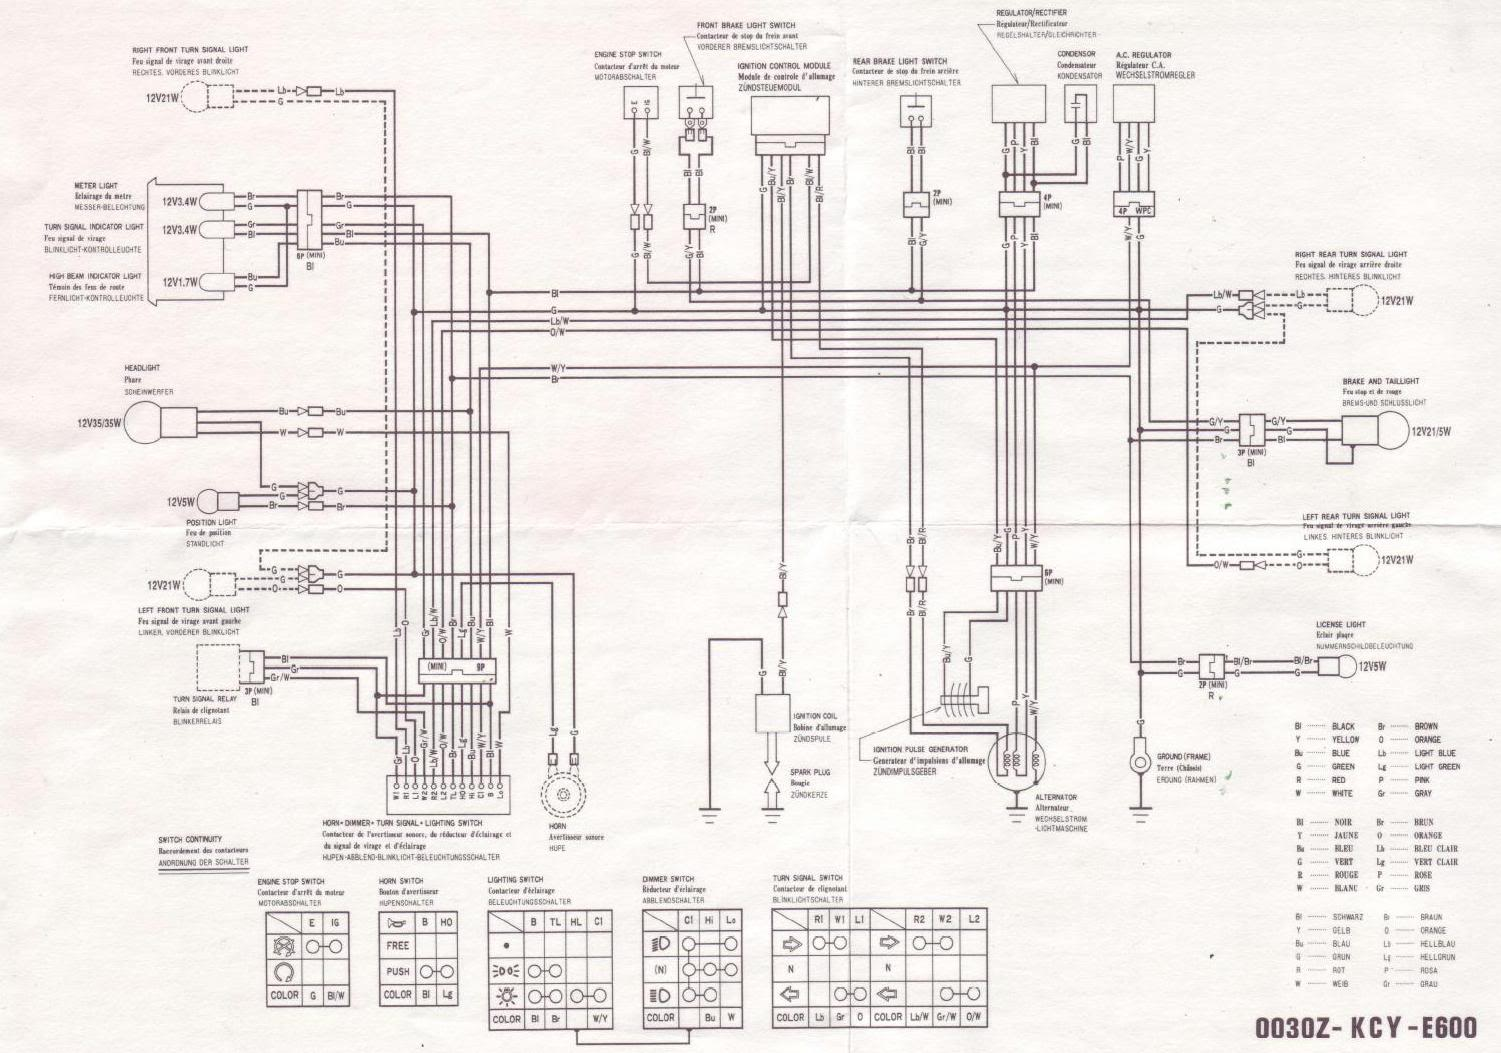 Xr600r Wiring Diagram - Wiring Diagram For You on transformer schematics, design schematics, piping schematics, ignition schematics, amplifier schematics, ecu schematics, computer schematics, circuit schematics, electronics schematics, engine schematics, wire schematics, ford diagrams schematics, motor schematics, engineering schematics, transmission schematics, ductwork schematics, generator schematics, electrical schematics, tube amp schematics, plumbing schematics,